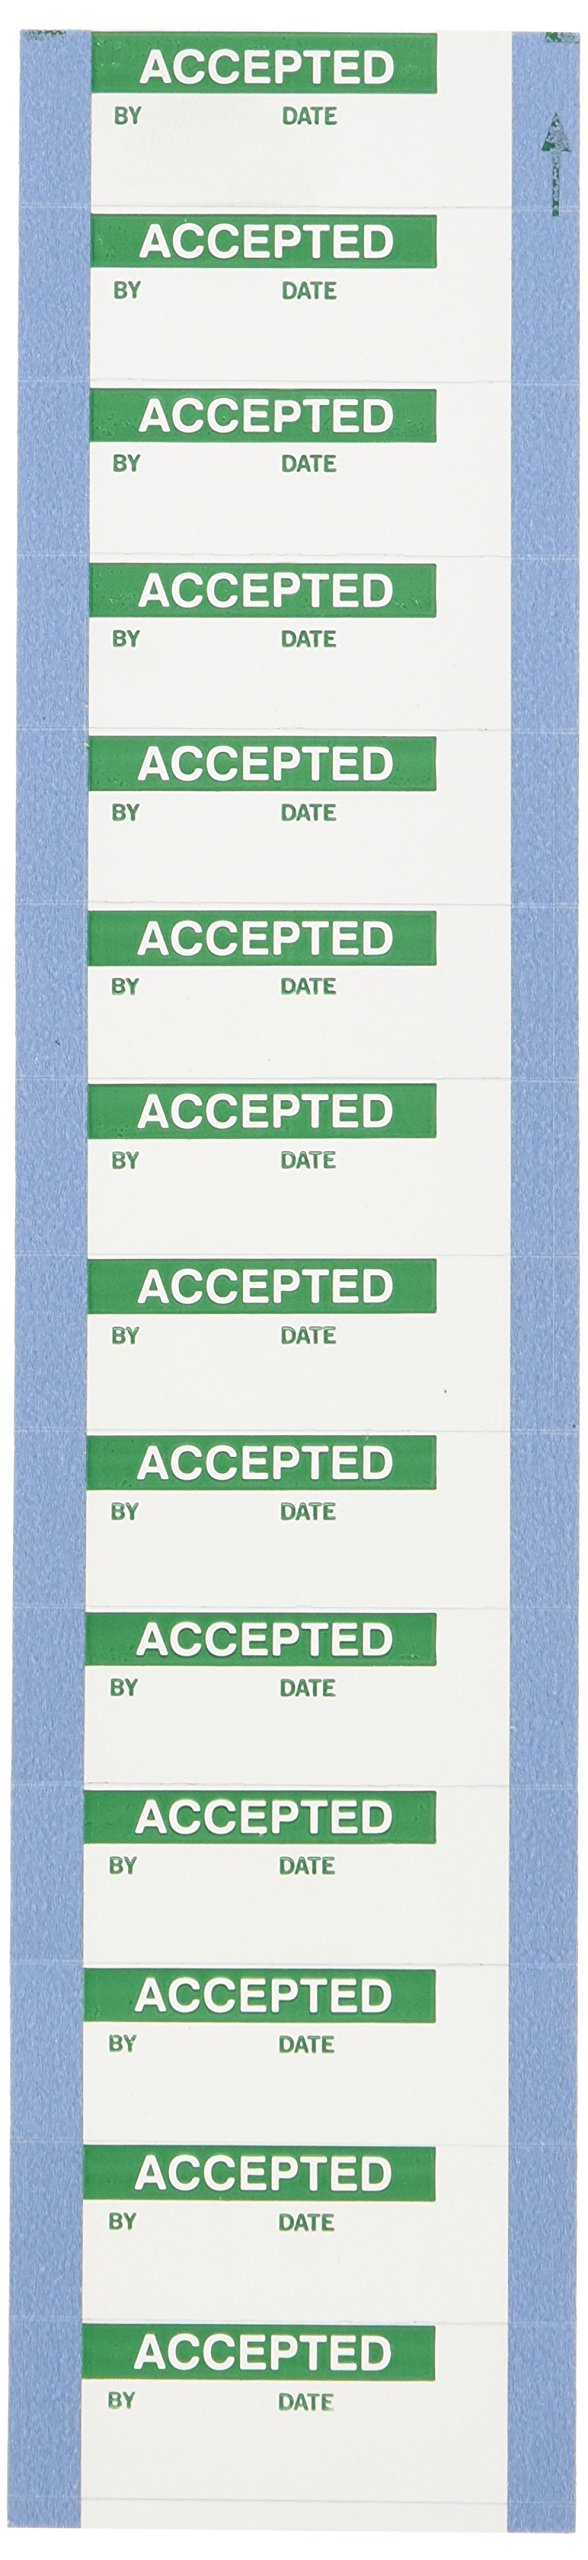 Brady WOX-2 Permanent Polyester Quality Control Labels , Green On White,  1.500'' x 0.625''  (38.100 Mm x 15.880 Mm),  Legend ''Accepted''  (14 Per Card,  1 Card Per Package)